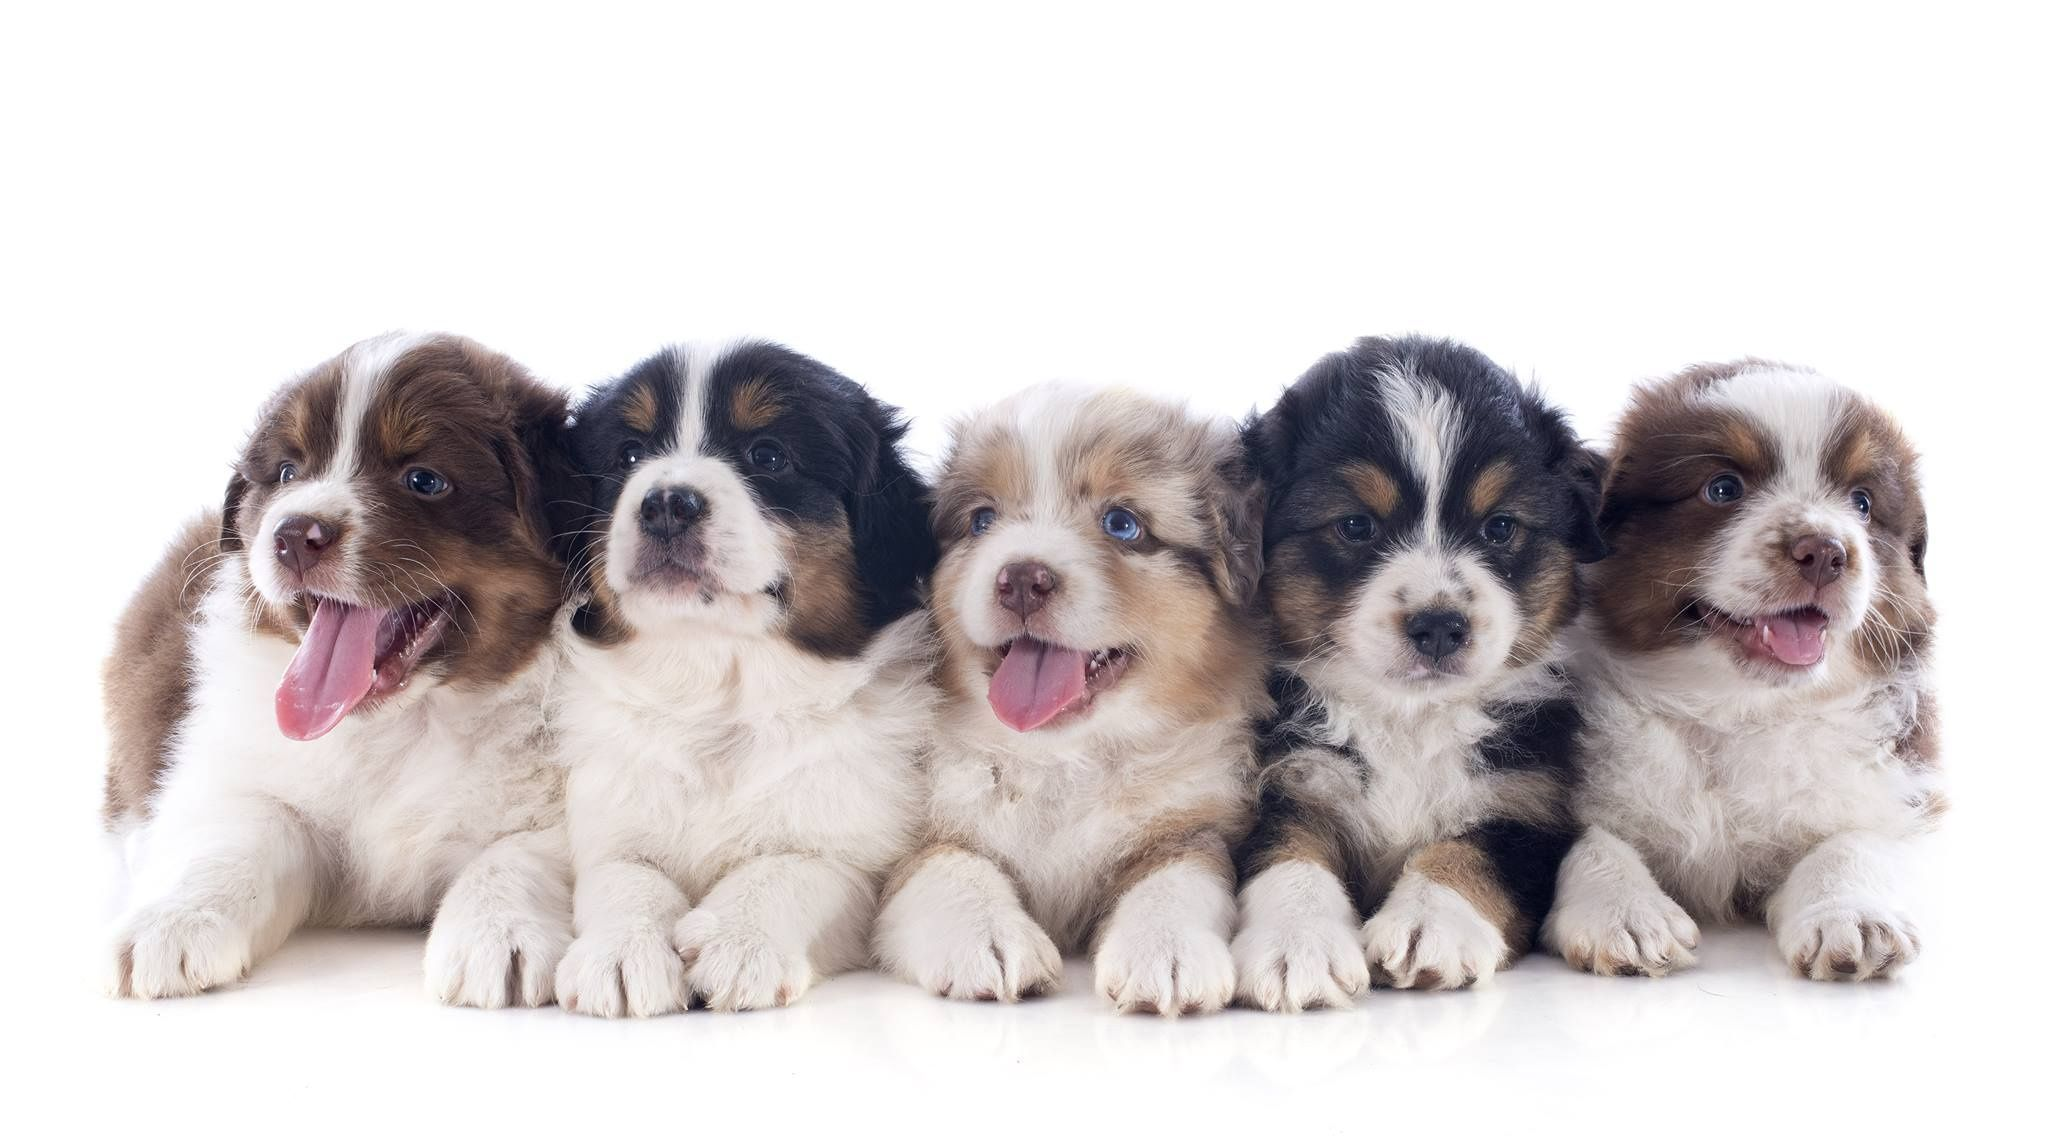 Corgi Puppies For Sale In Evansville Indiana References